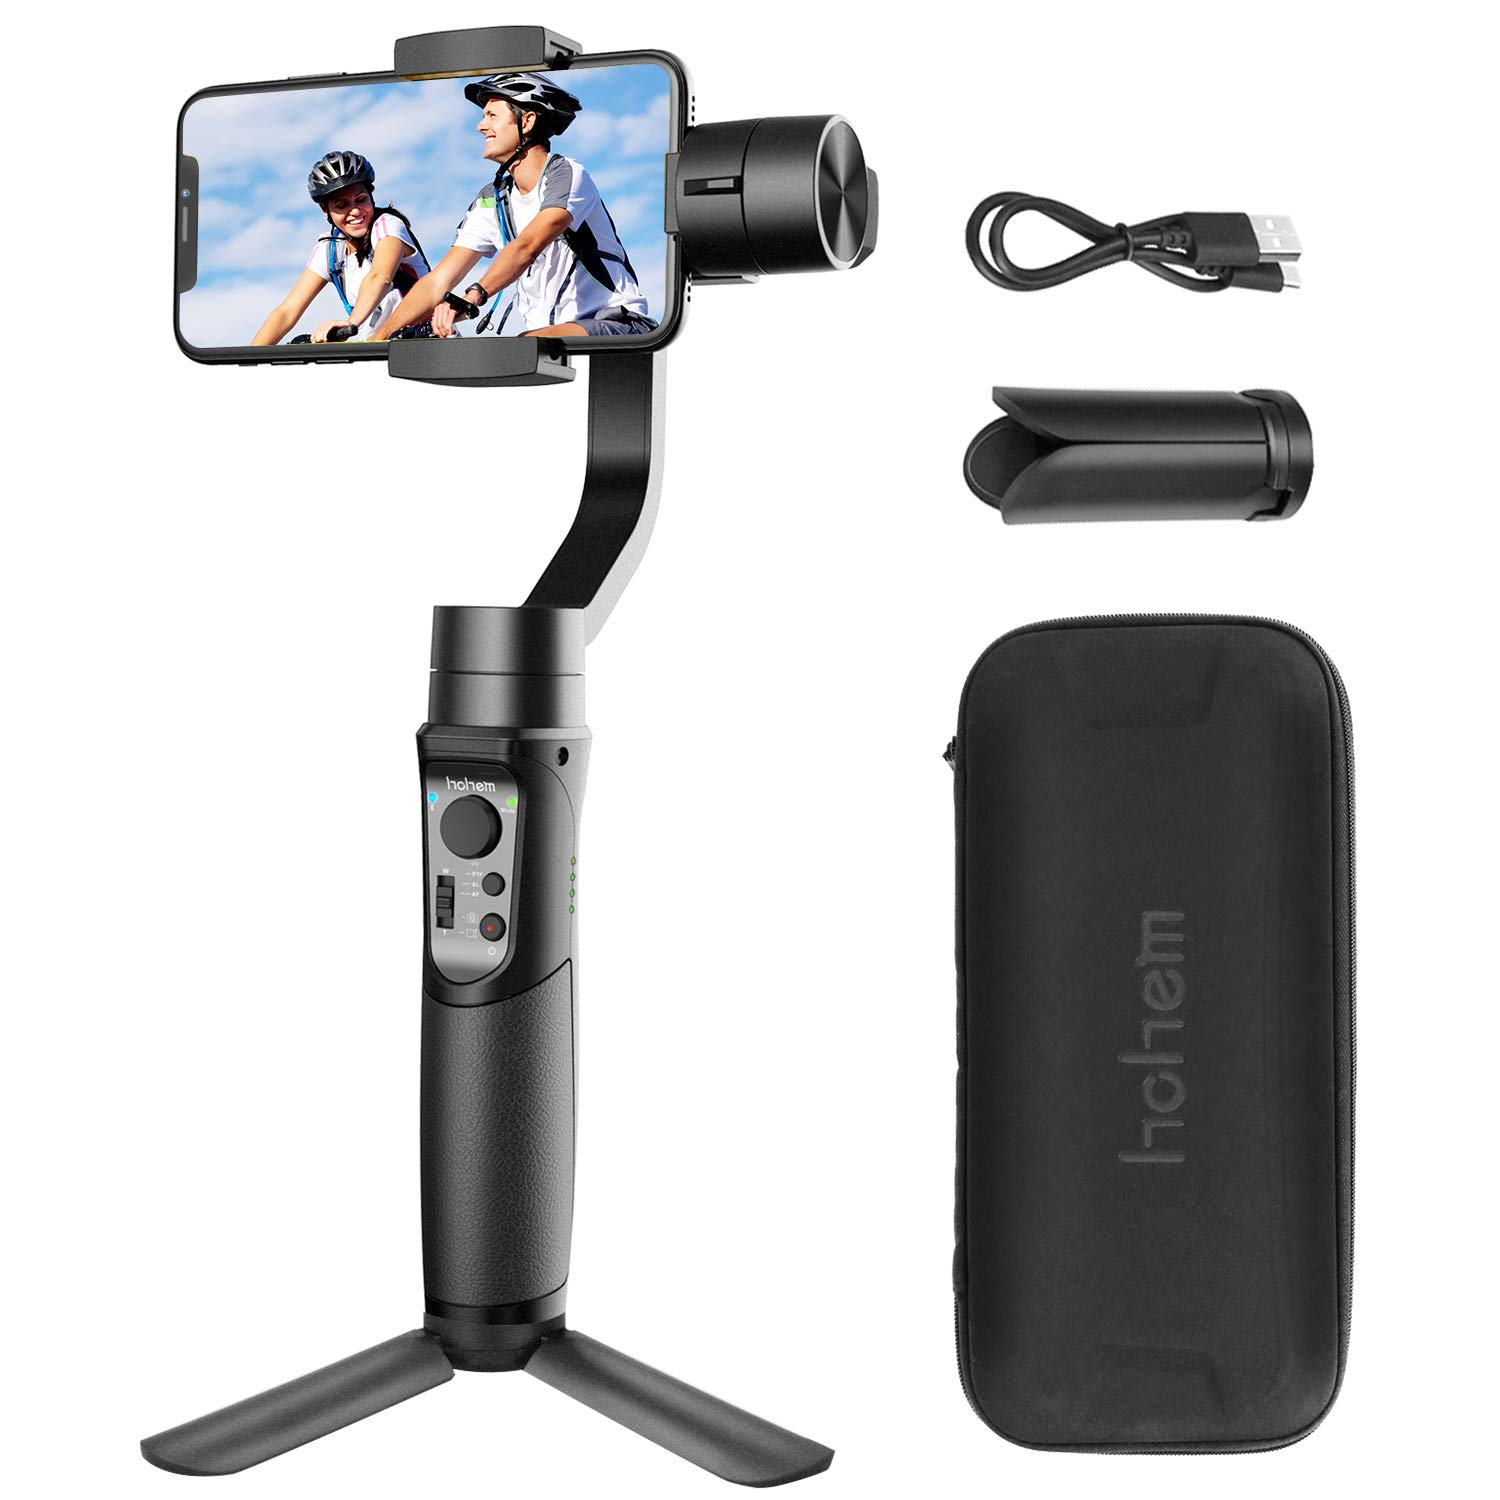 Hohem Gimbal iSteady Mobile 3-Axis Handheld Stabilizer for Smartphone, for iPhone XR/XS MAX/X/8/8P, for Android, Time Lapse, Auto Tracking (Hohem stabilizers)